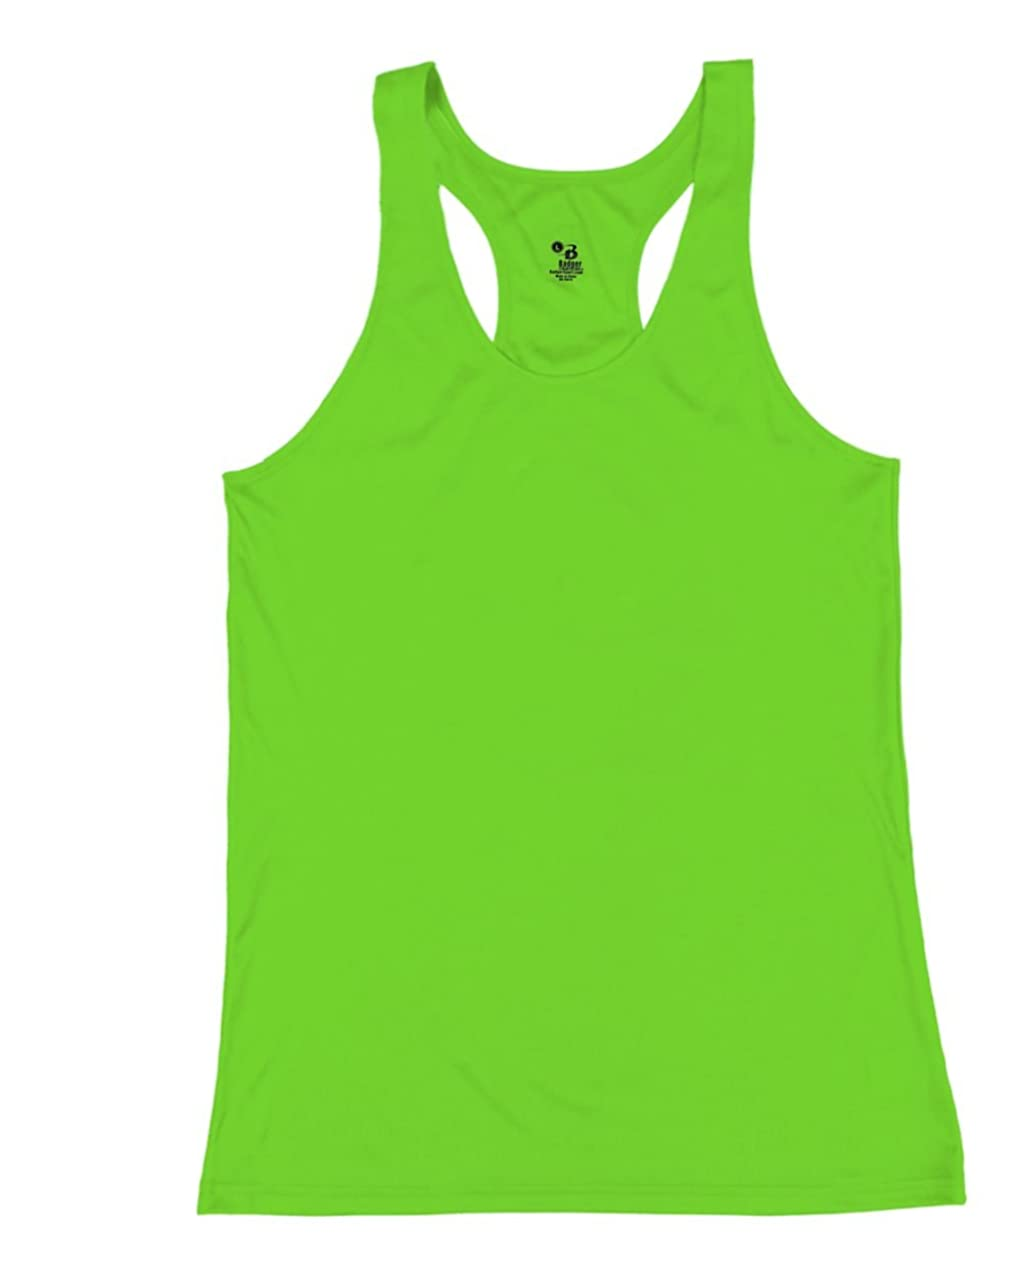 Lime Bright Green Ladies Large B-Core Moisture Wicking Racerback Tank Sports Top